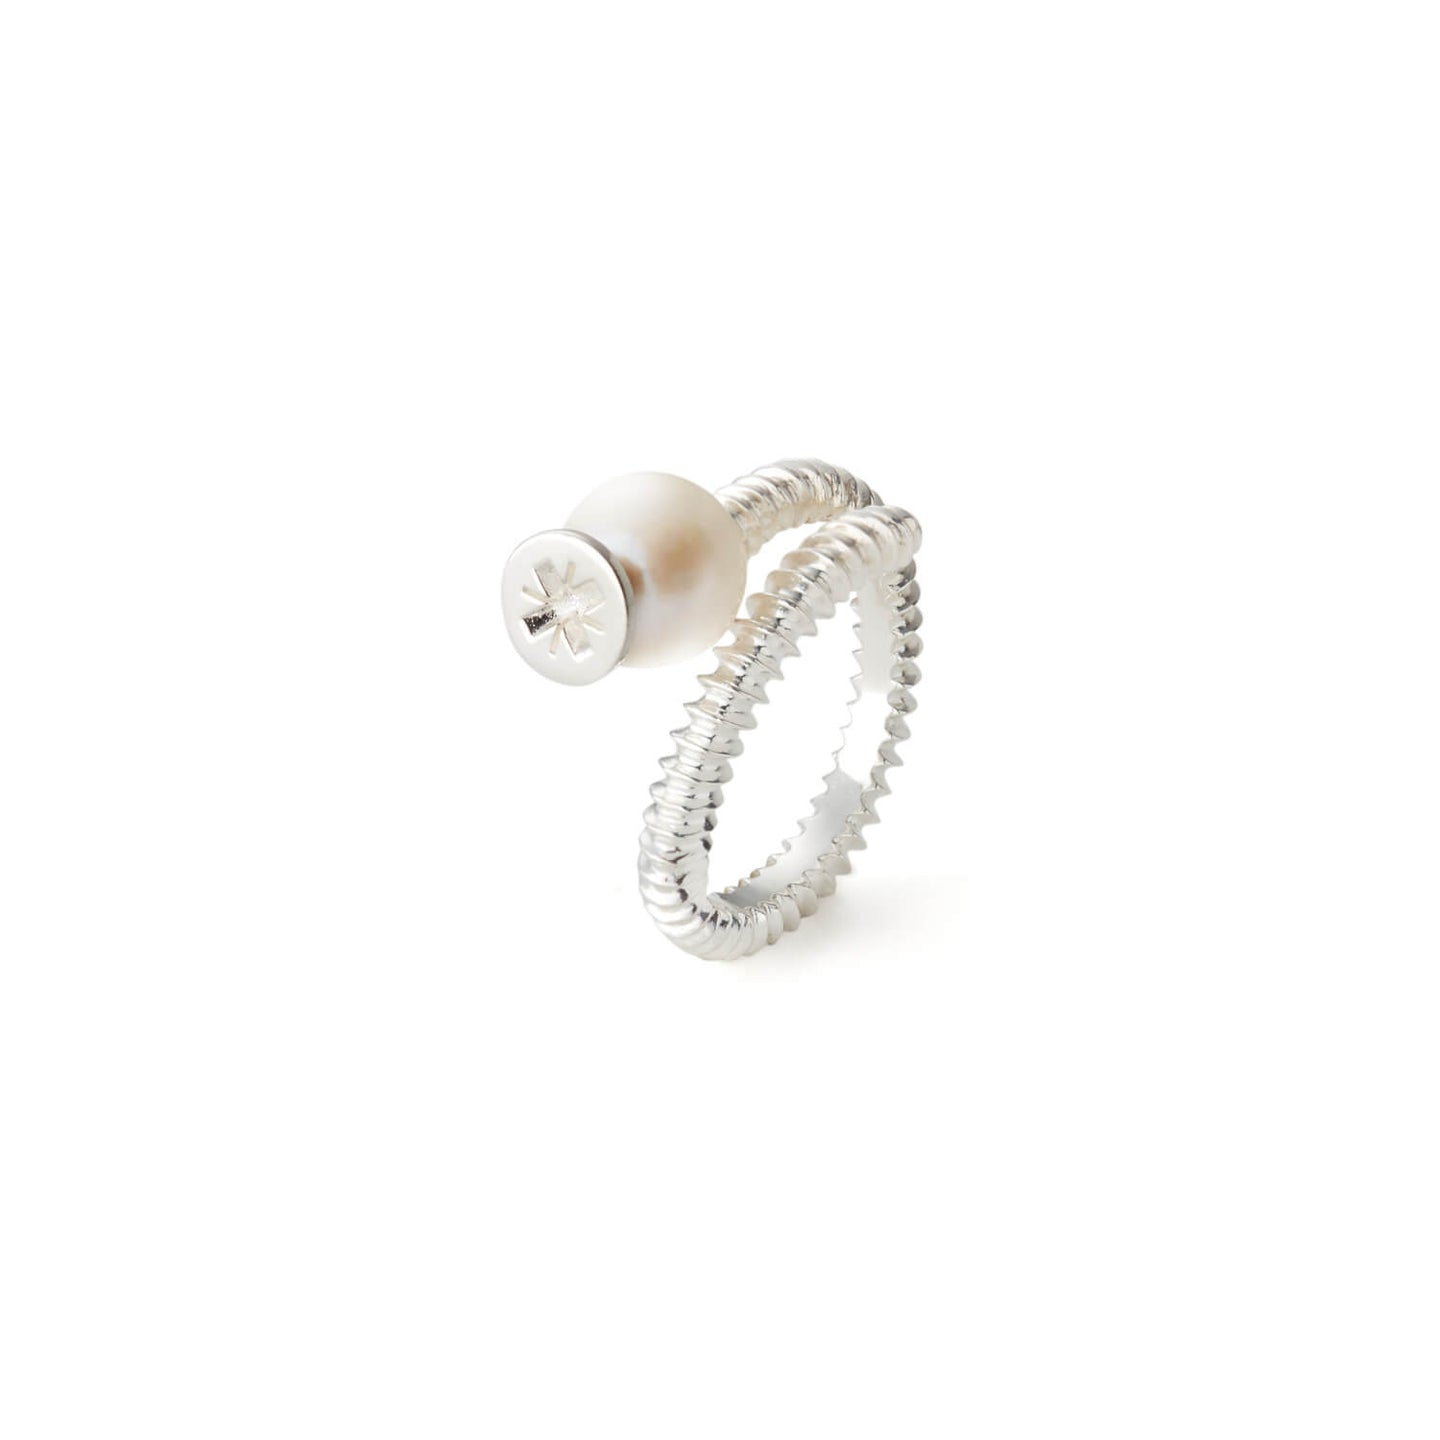 Pearl Screw Ring | Sterling Silver | FWJ x Motley | Product Shot 1